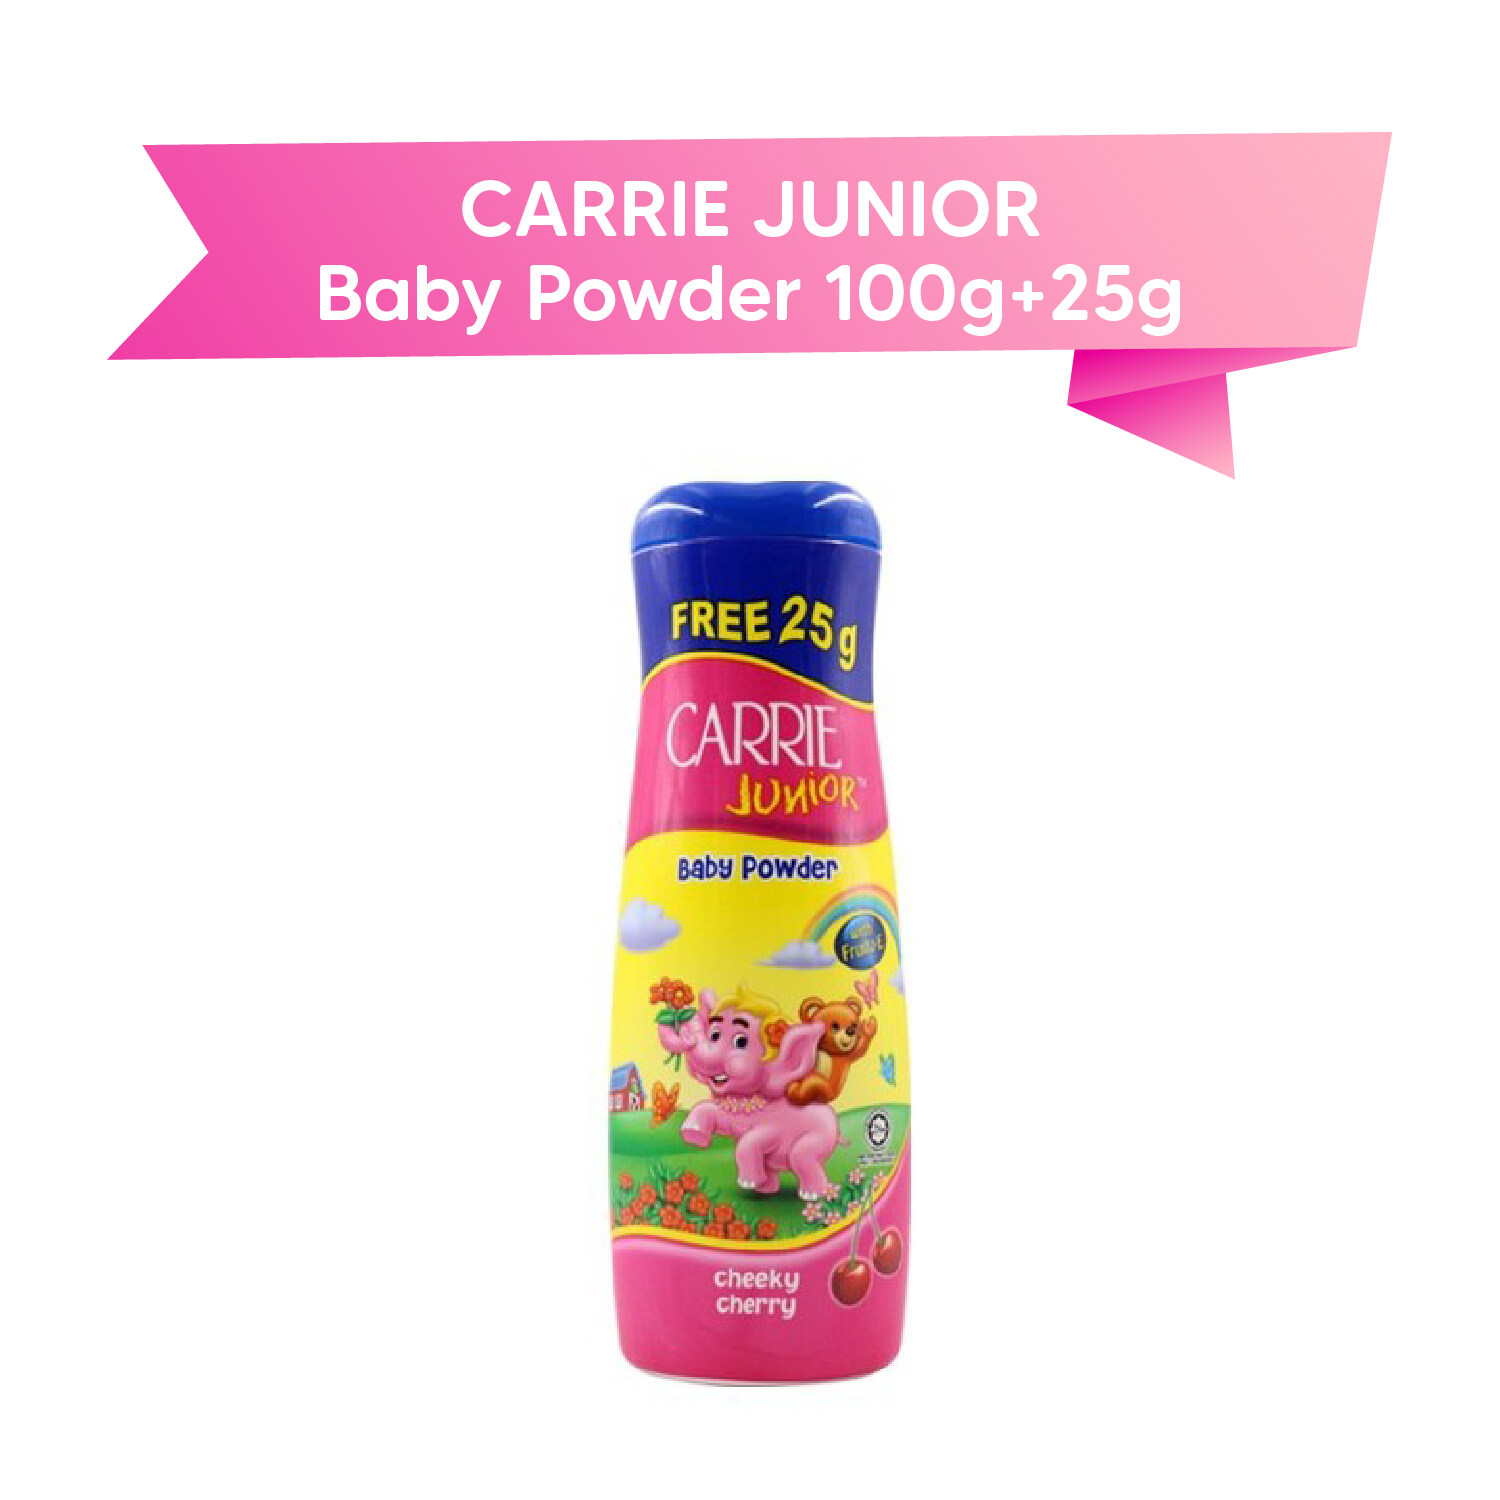 CARRIE JUNIOR Baby Powder 100g + 25 g (cheeky cherry)